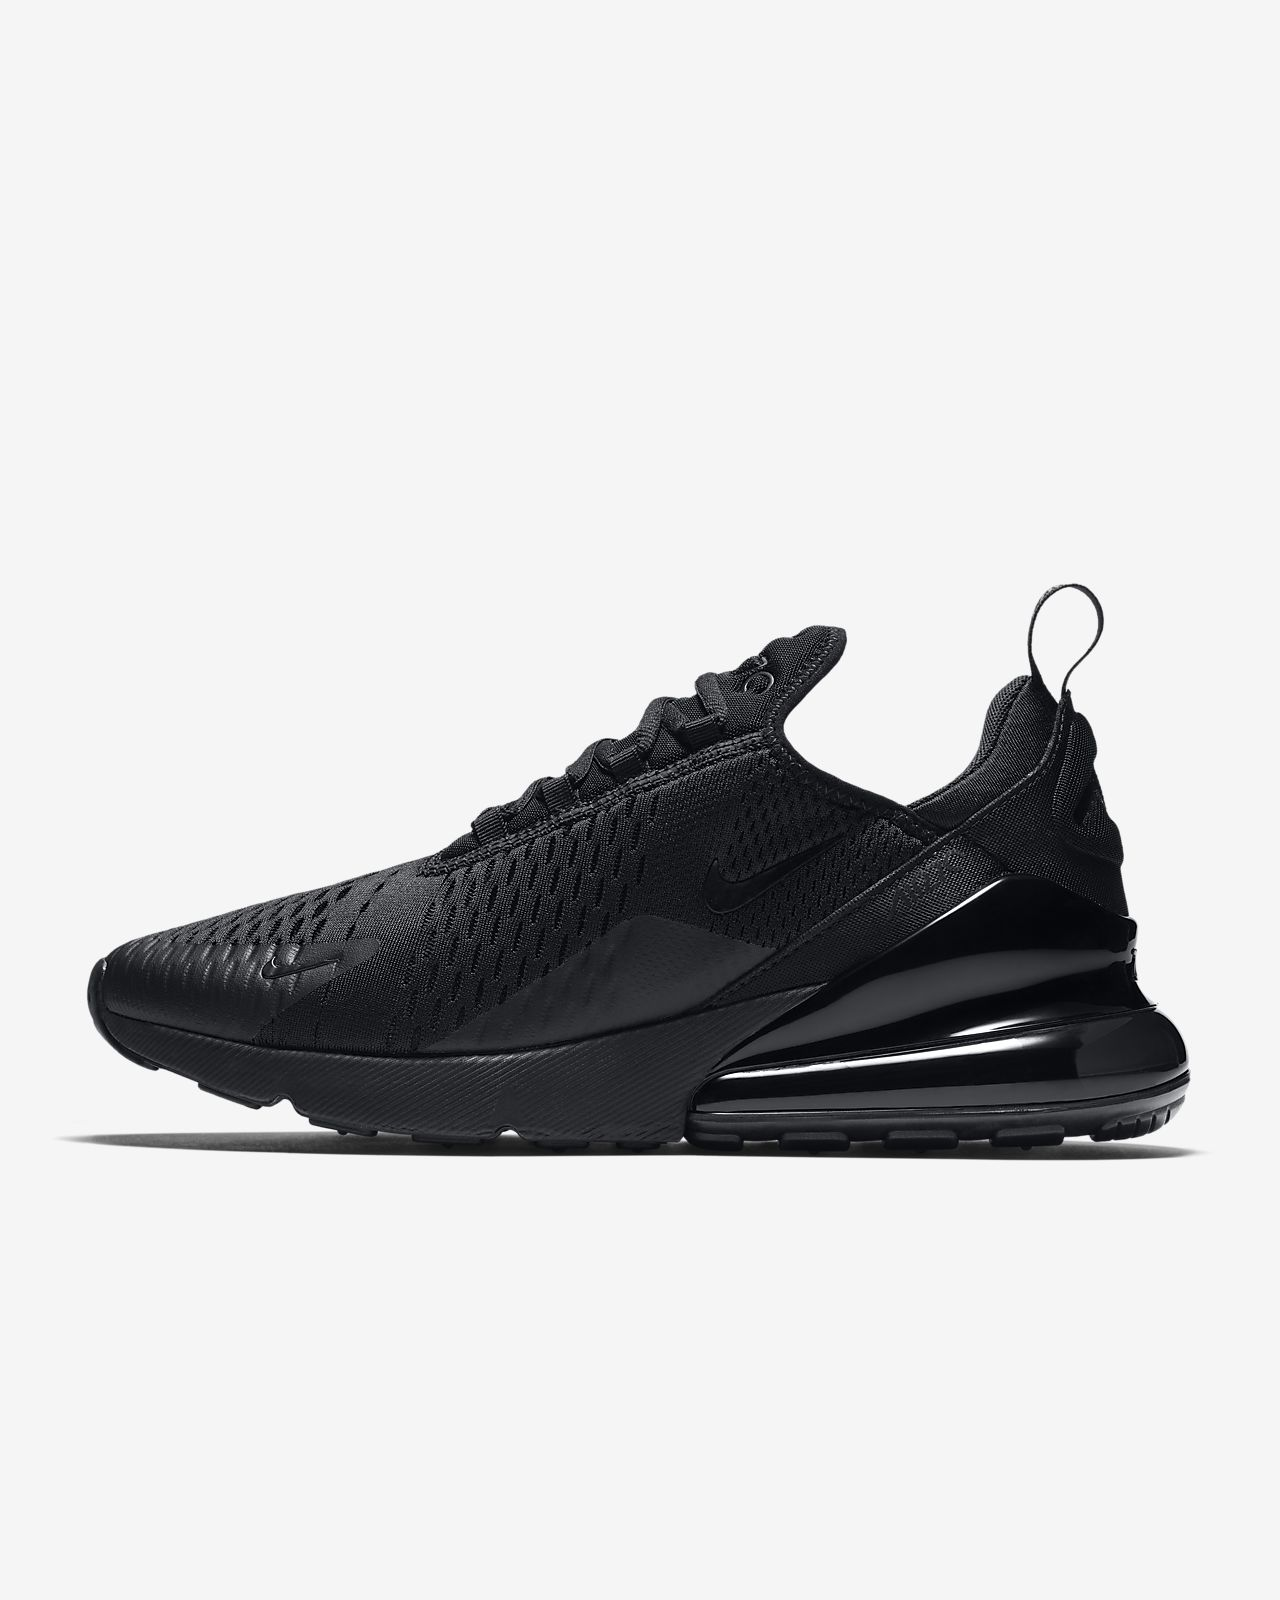 1f7f8fcca3fd8 Nike Air Max 270 Men s Shoe. Nike.com ZA